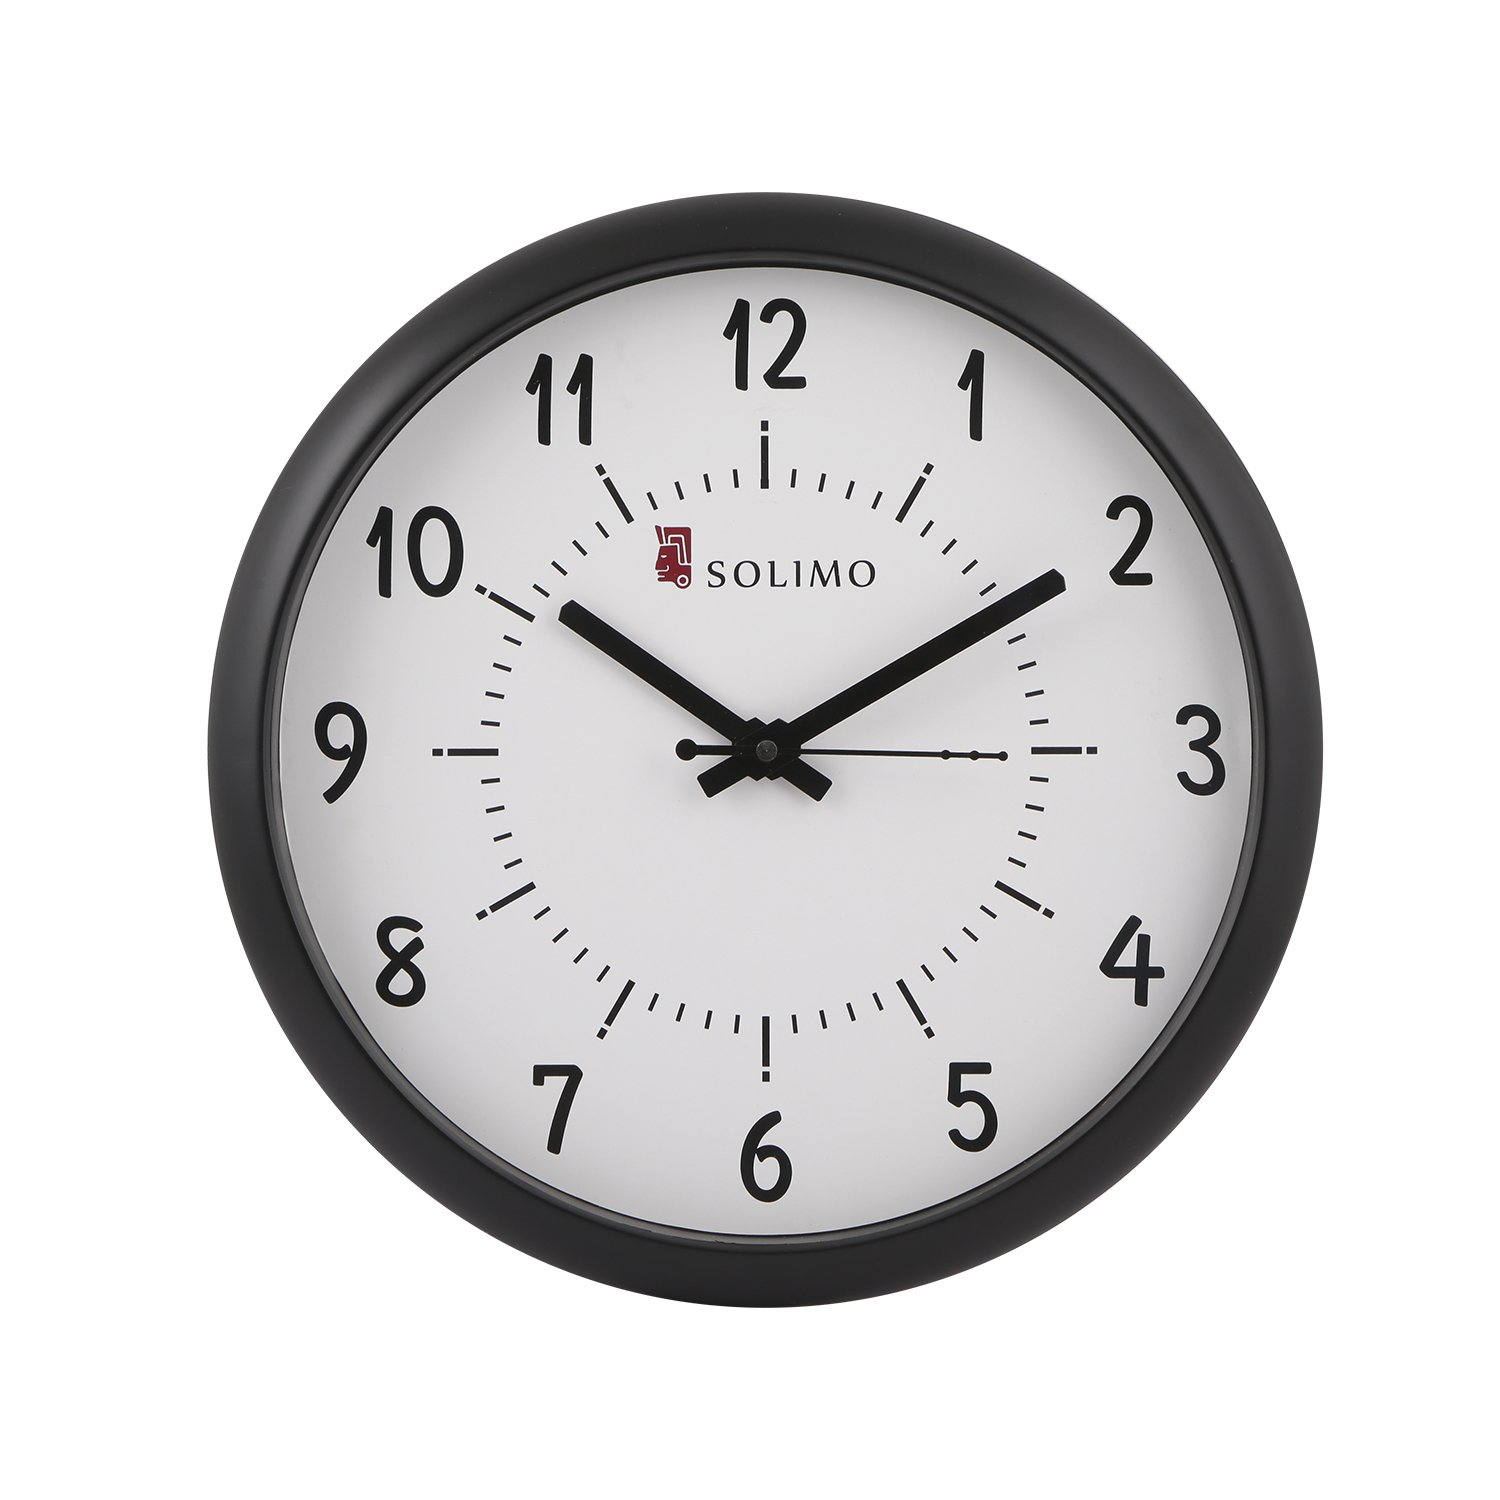 Wall clock buy wall clock online at best prices in india amazon solimo 11 inch wall clock step movement black frame amipublicfo Gallery